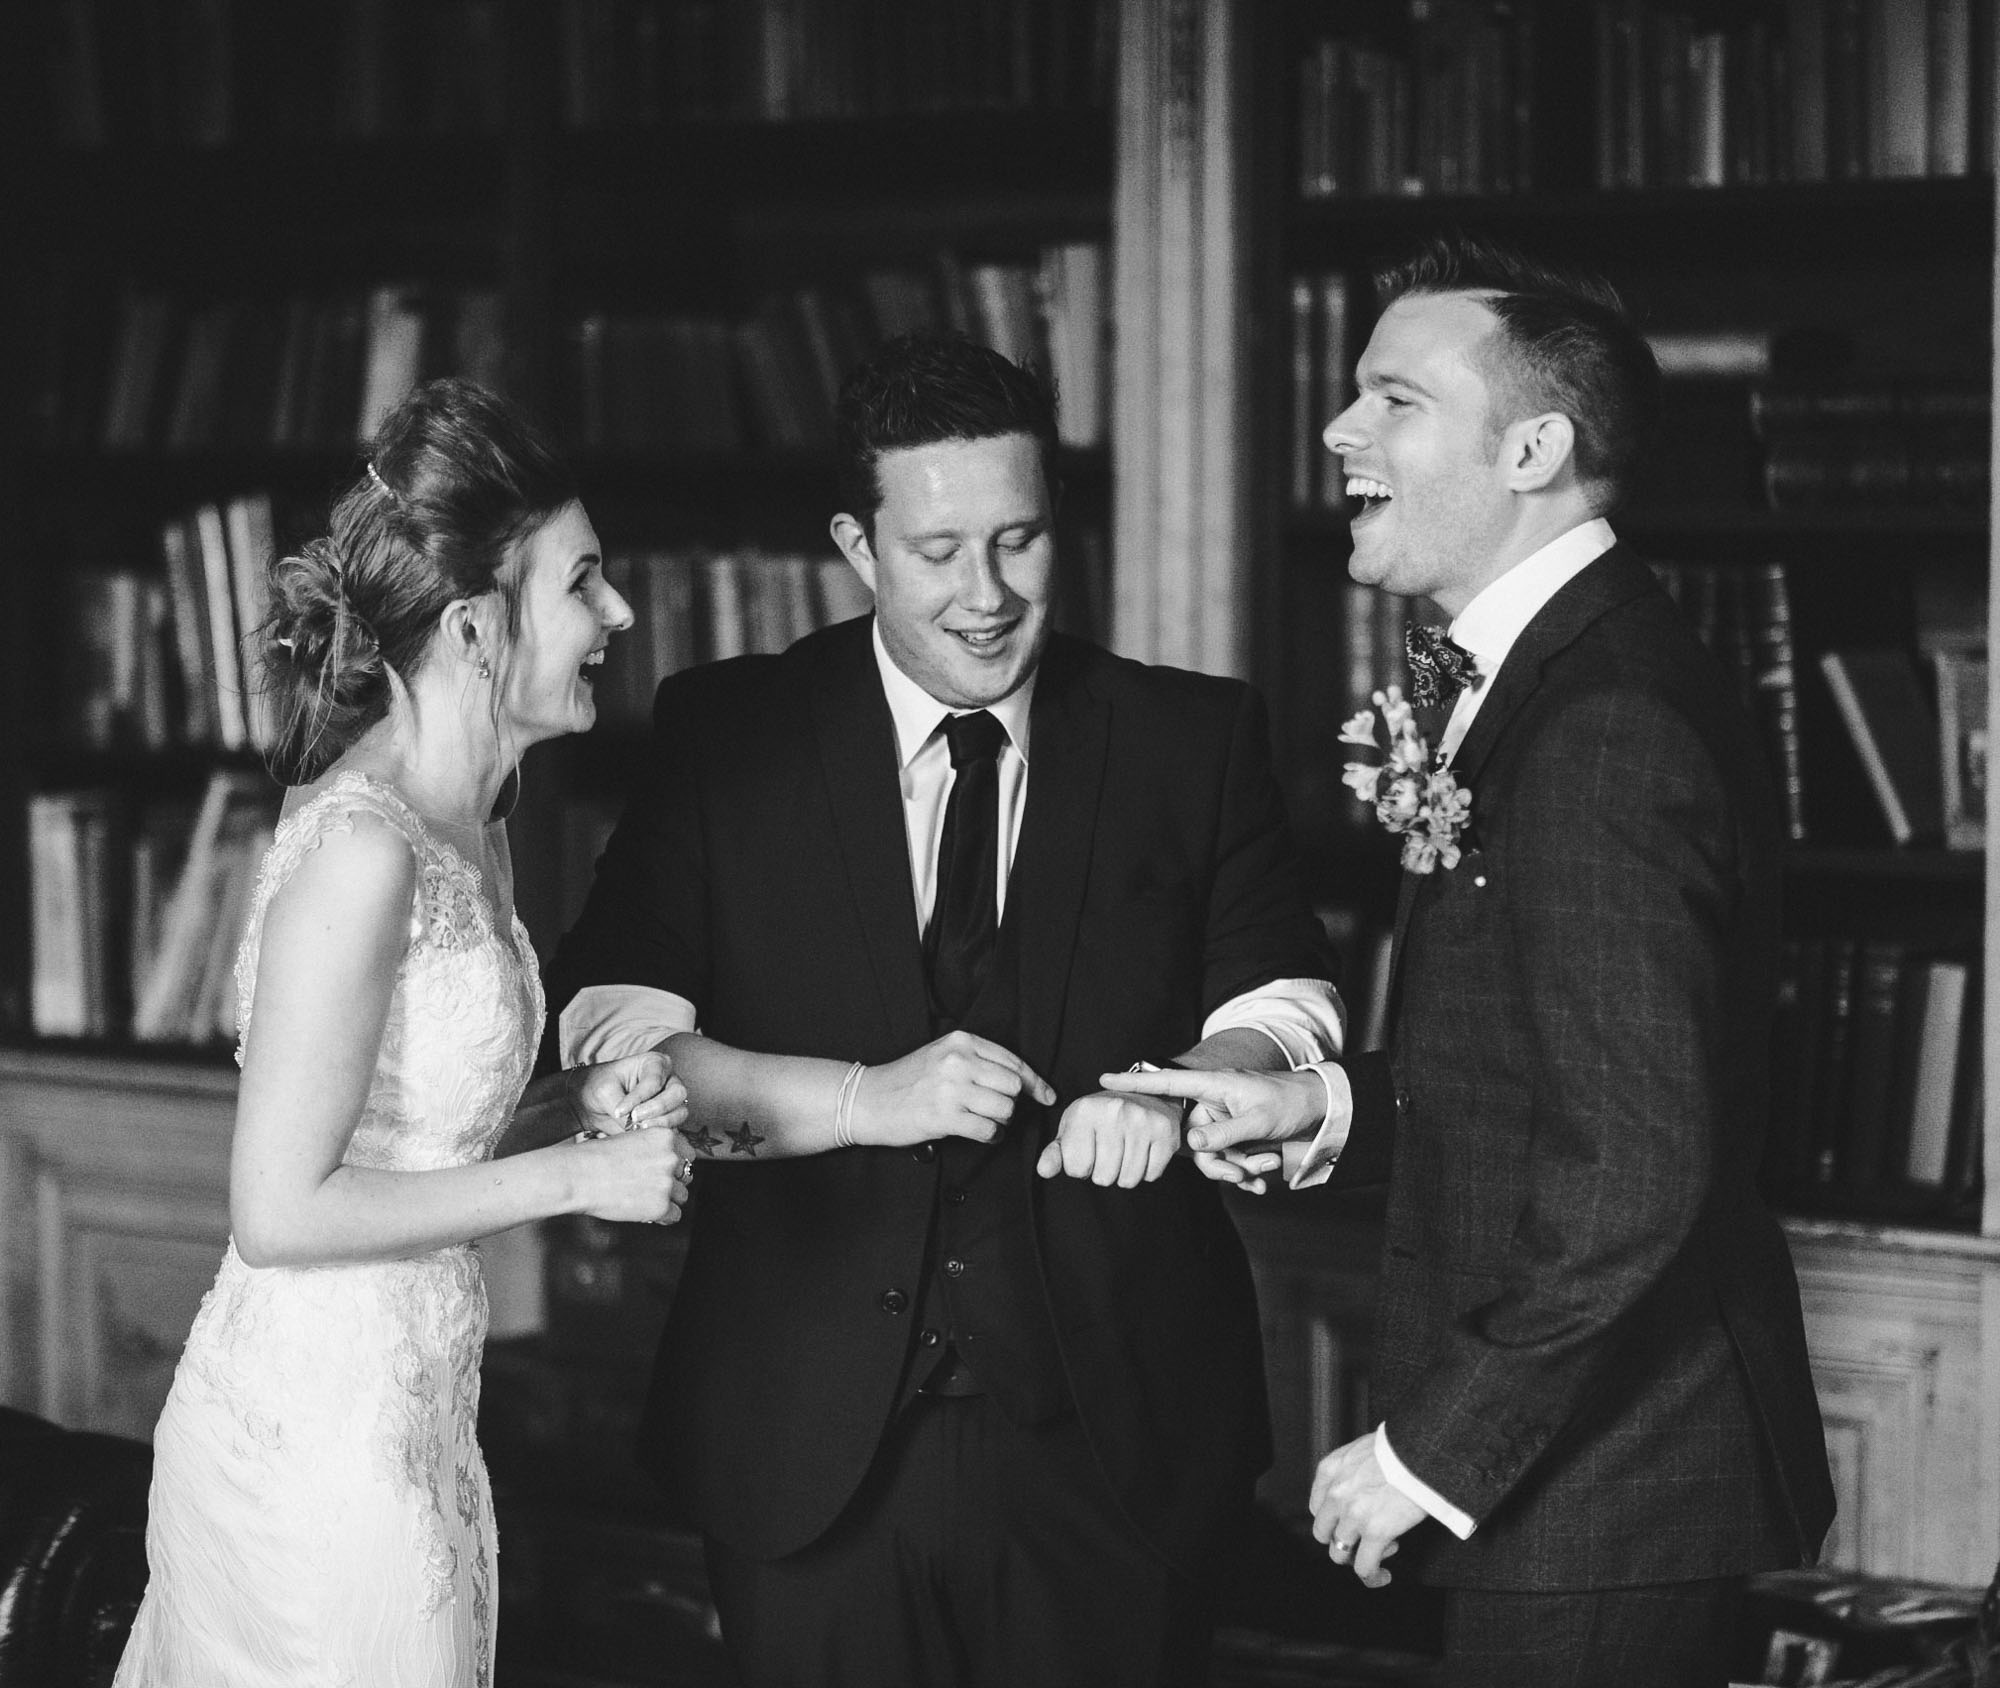 rise hall wedding photos.jpg